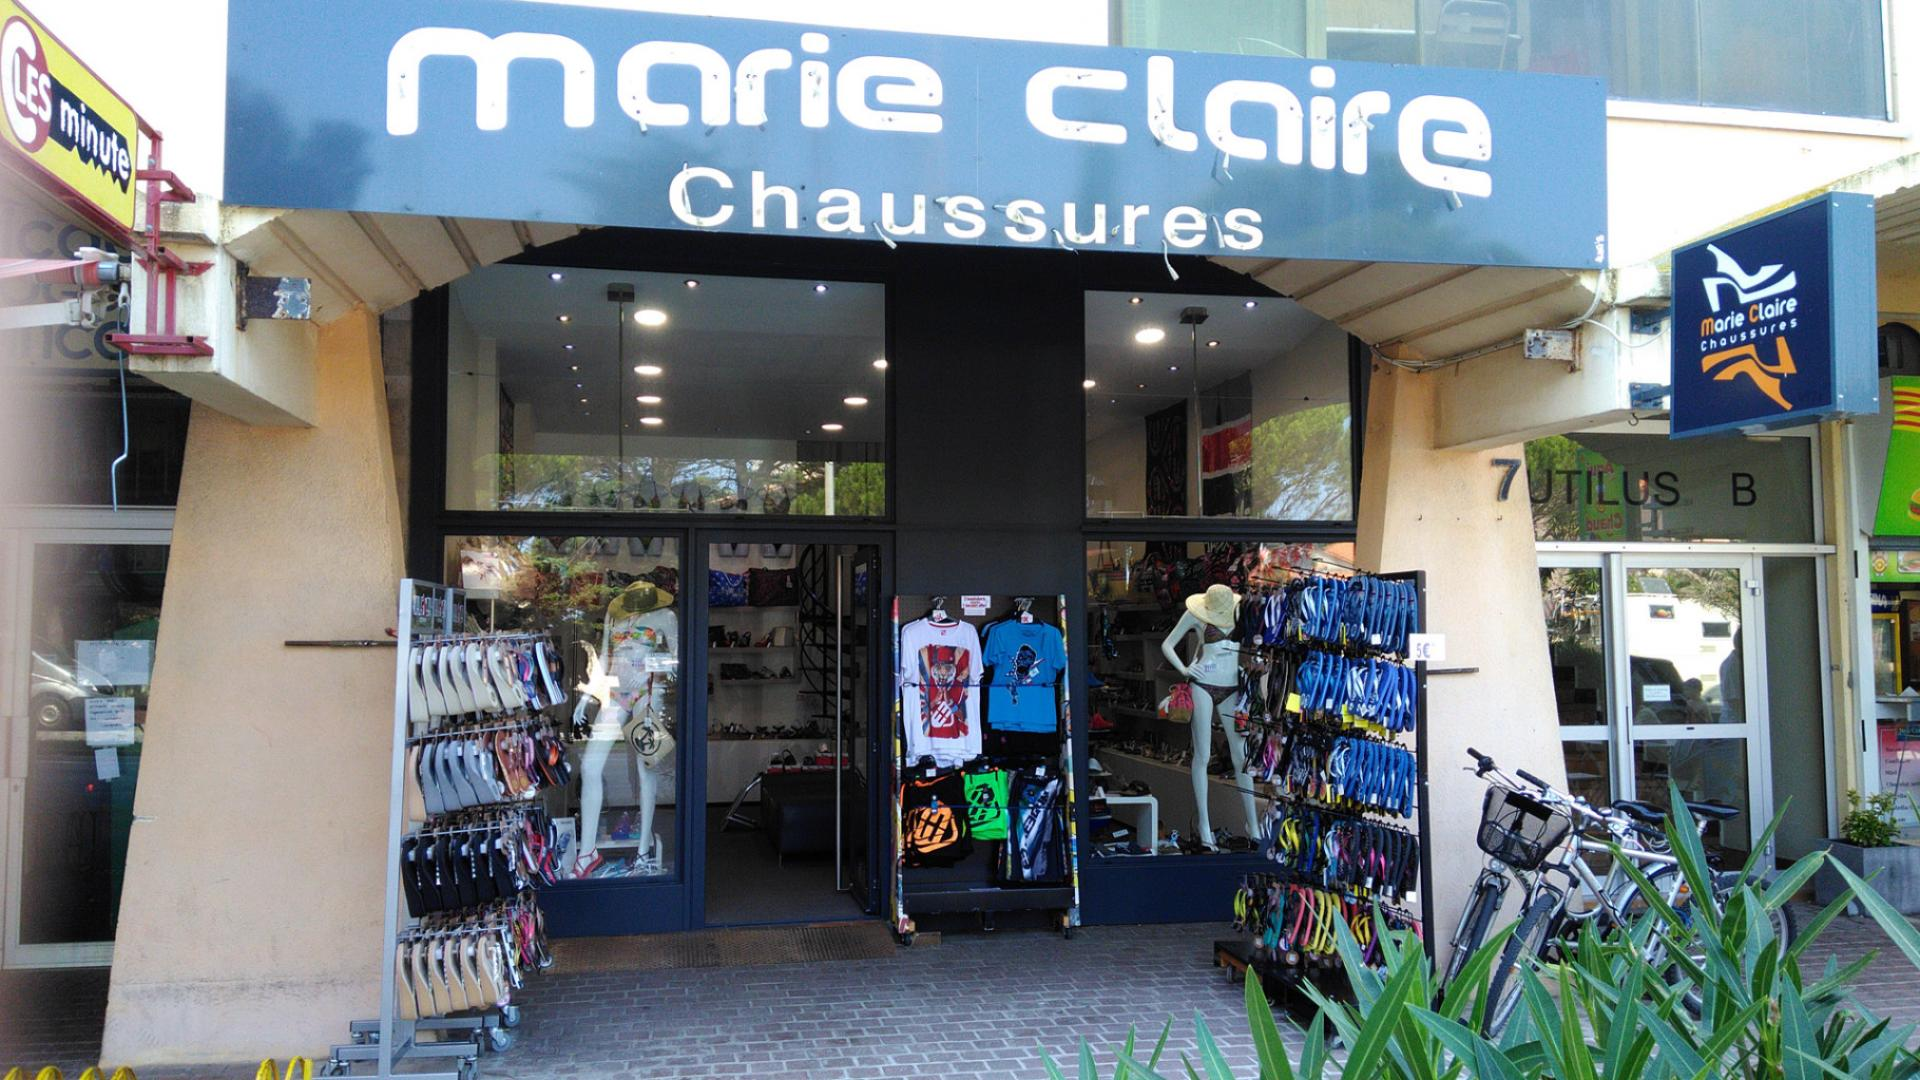 MARIE CLAIRE CHAUSSURES